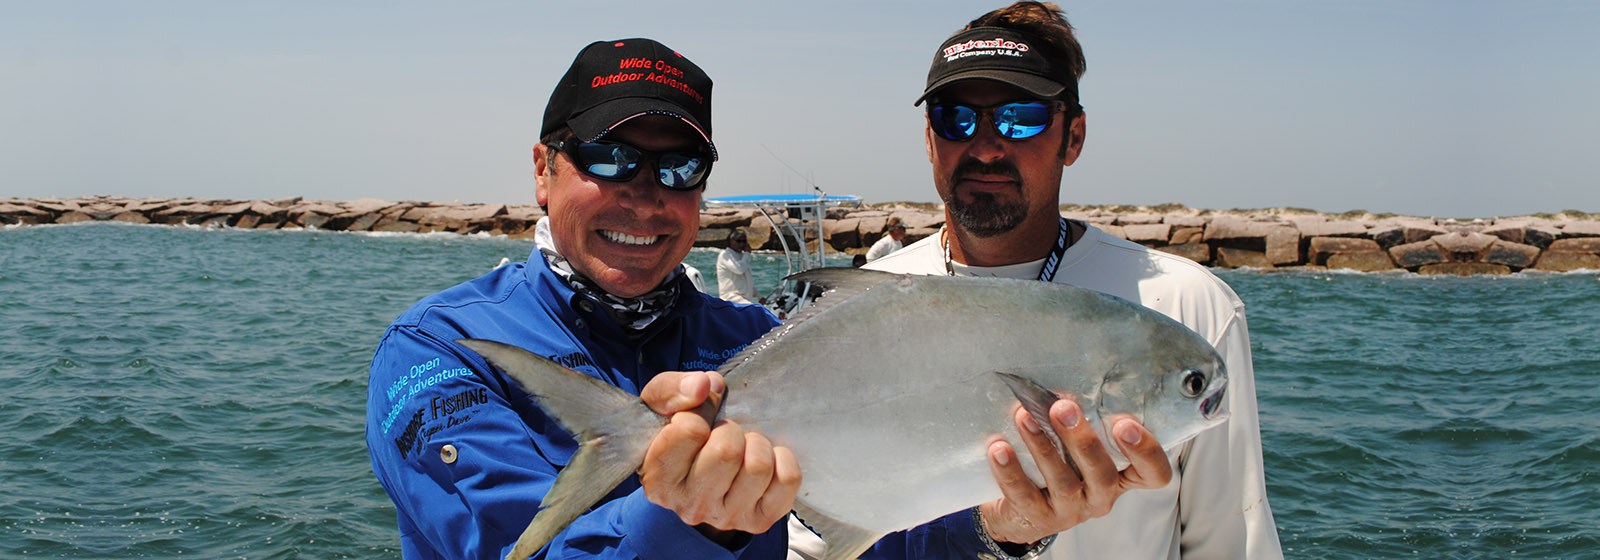 Matagorda bay fishing reports empire lodge for Matagorda fishing guides